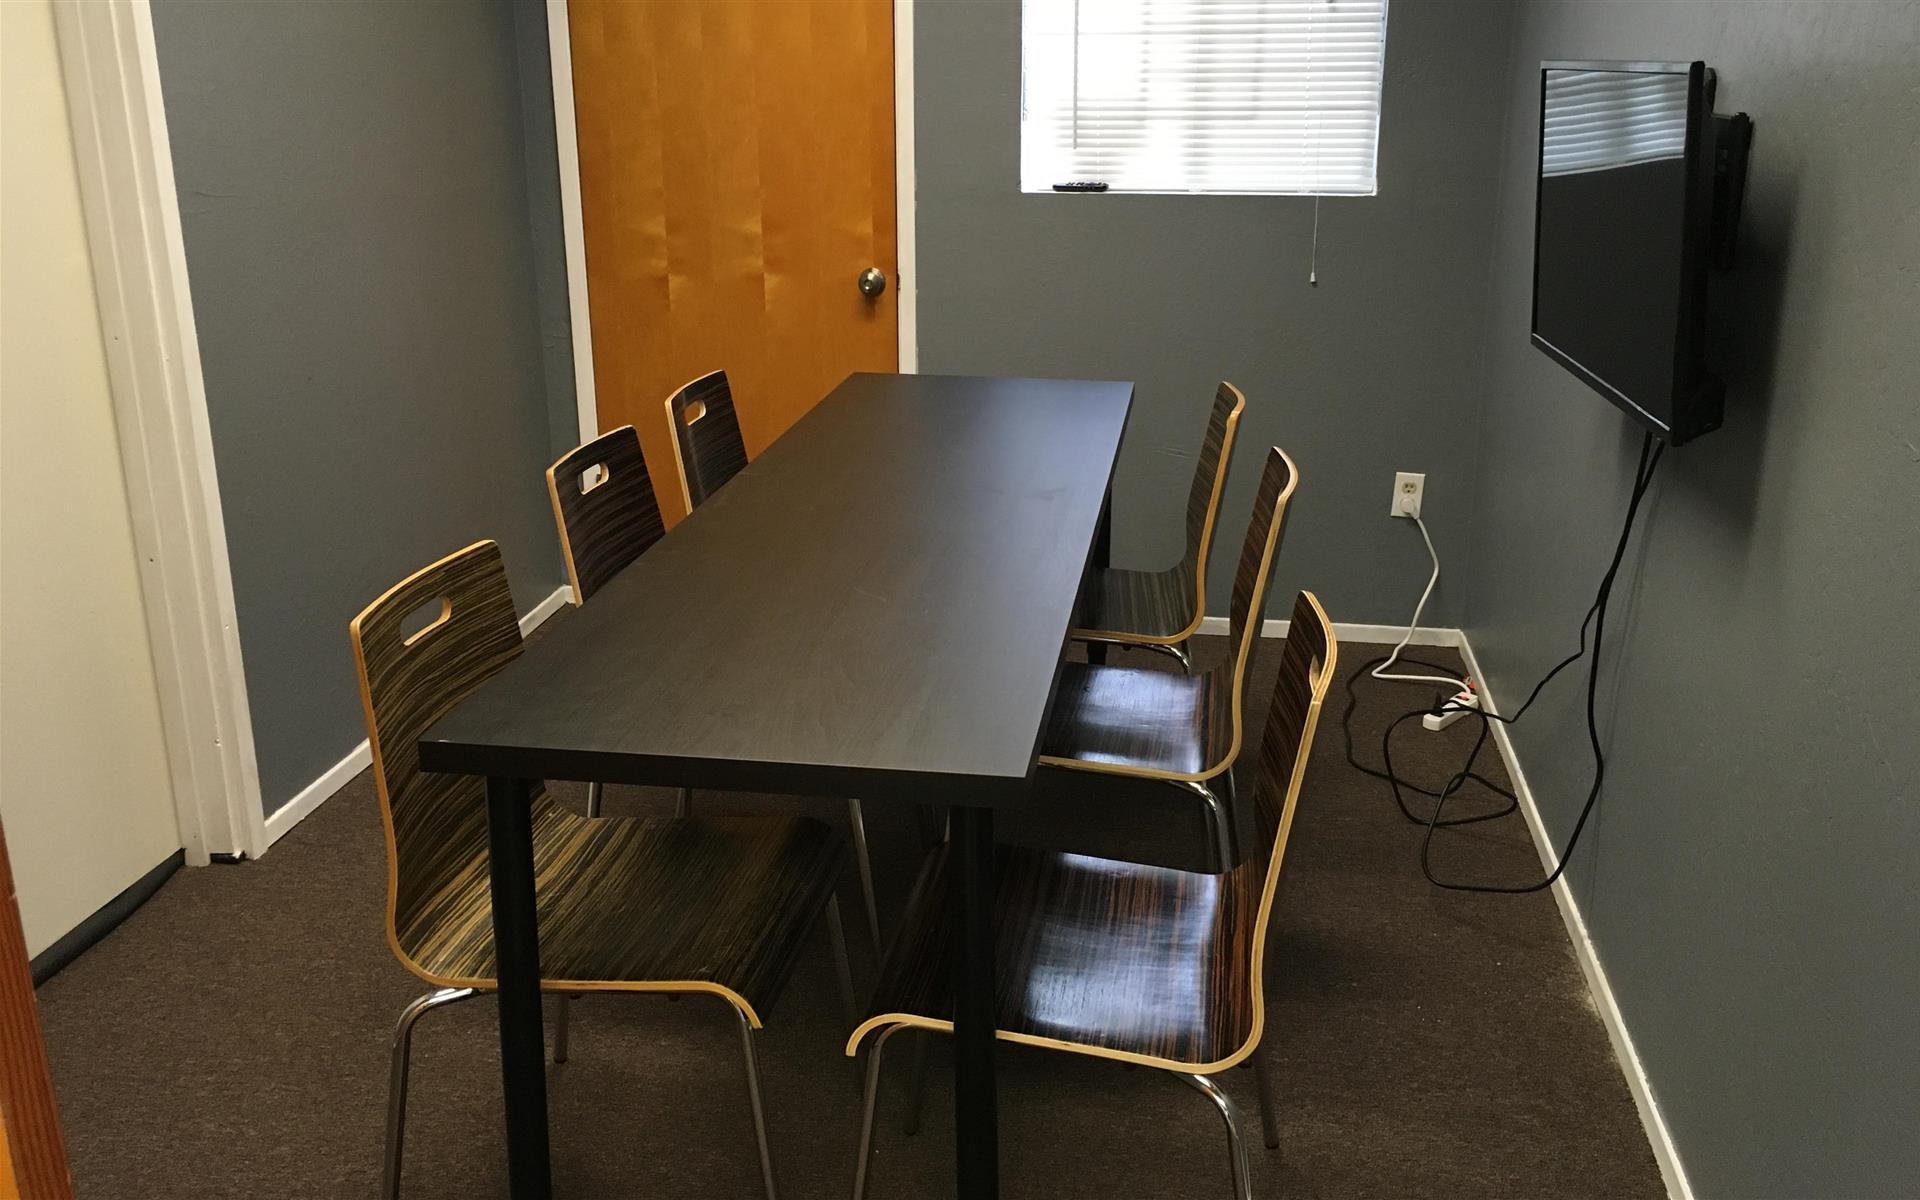 Cotton CORE Spaces - Conference Room for 6